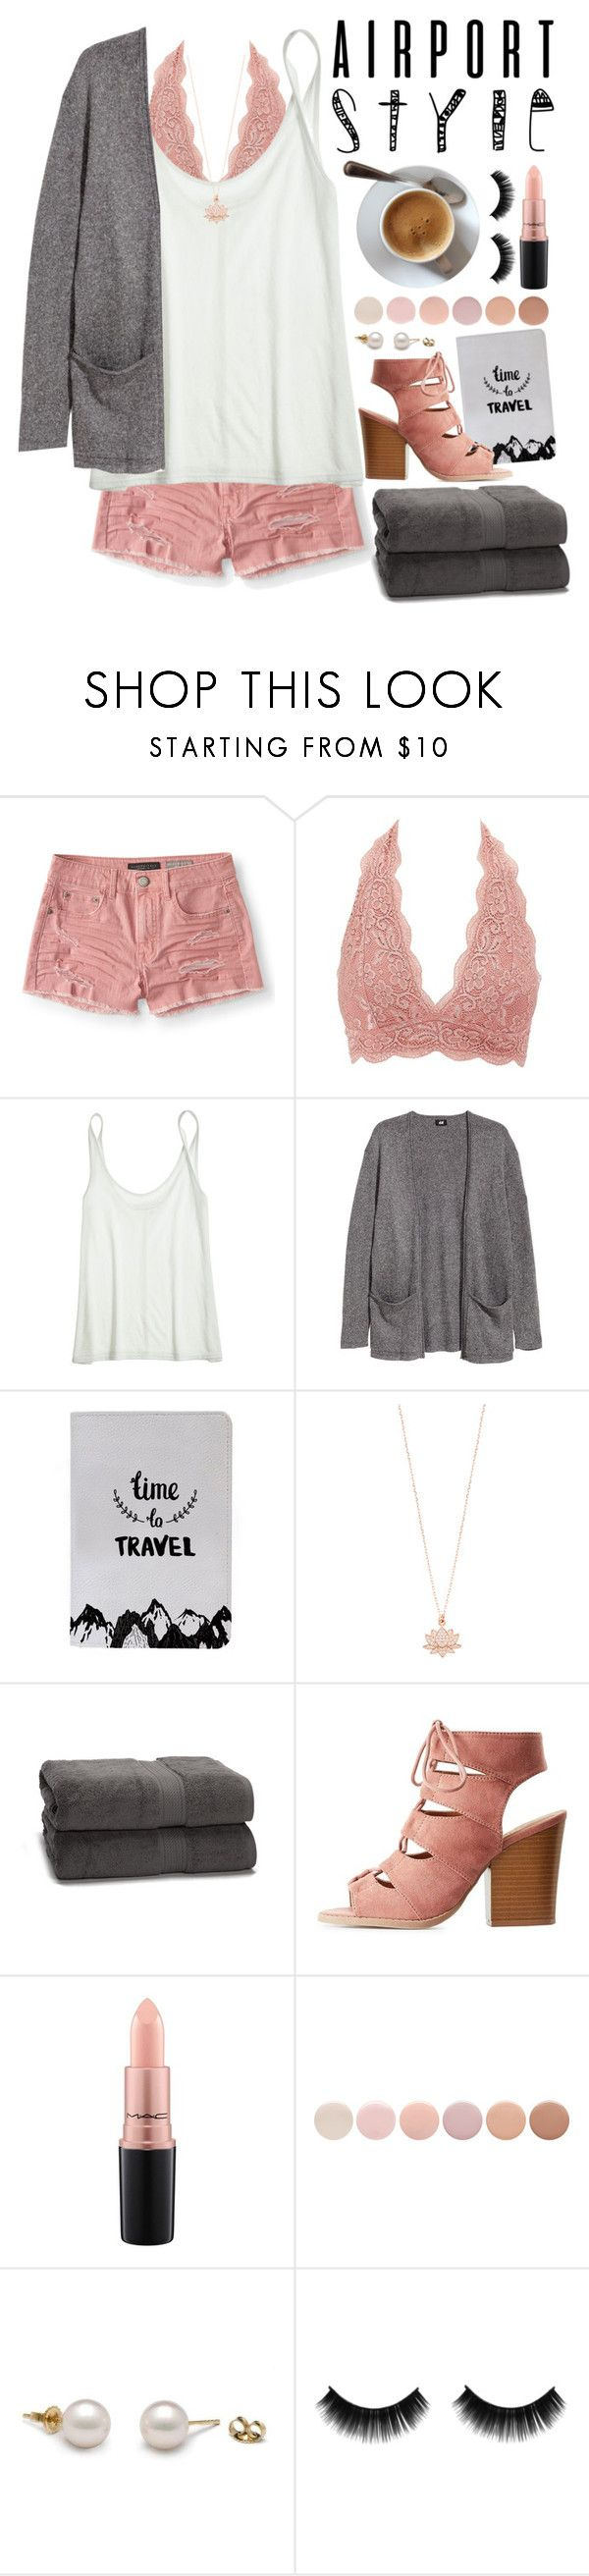 """Jet Set: Airport Style"" by bekah-04 ❤ liked on Polyvore featuring Aéropostale, Charlotte Russe, Calypso St. Barth, H&M, Accessorize, MAC Cosmetics and Deborah Lippmann"